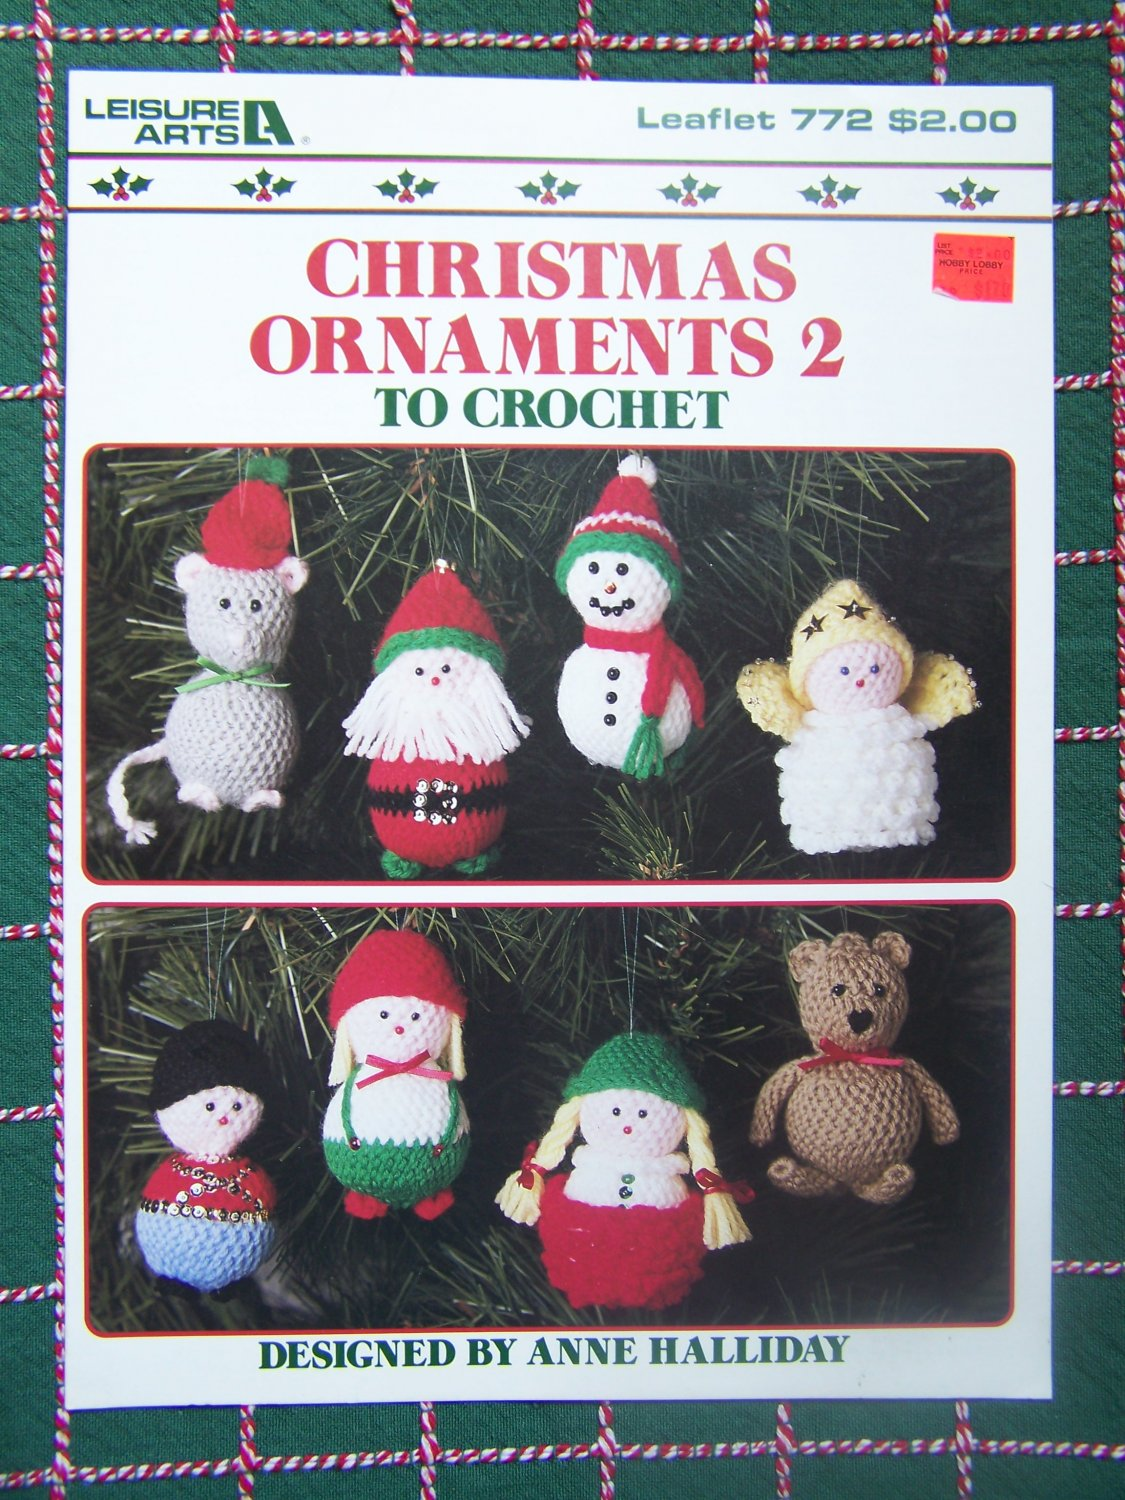 Free USA S&H   8 New Vintage Christmas Crochet Ornament Patterns 772